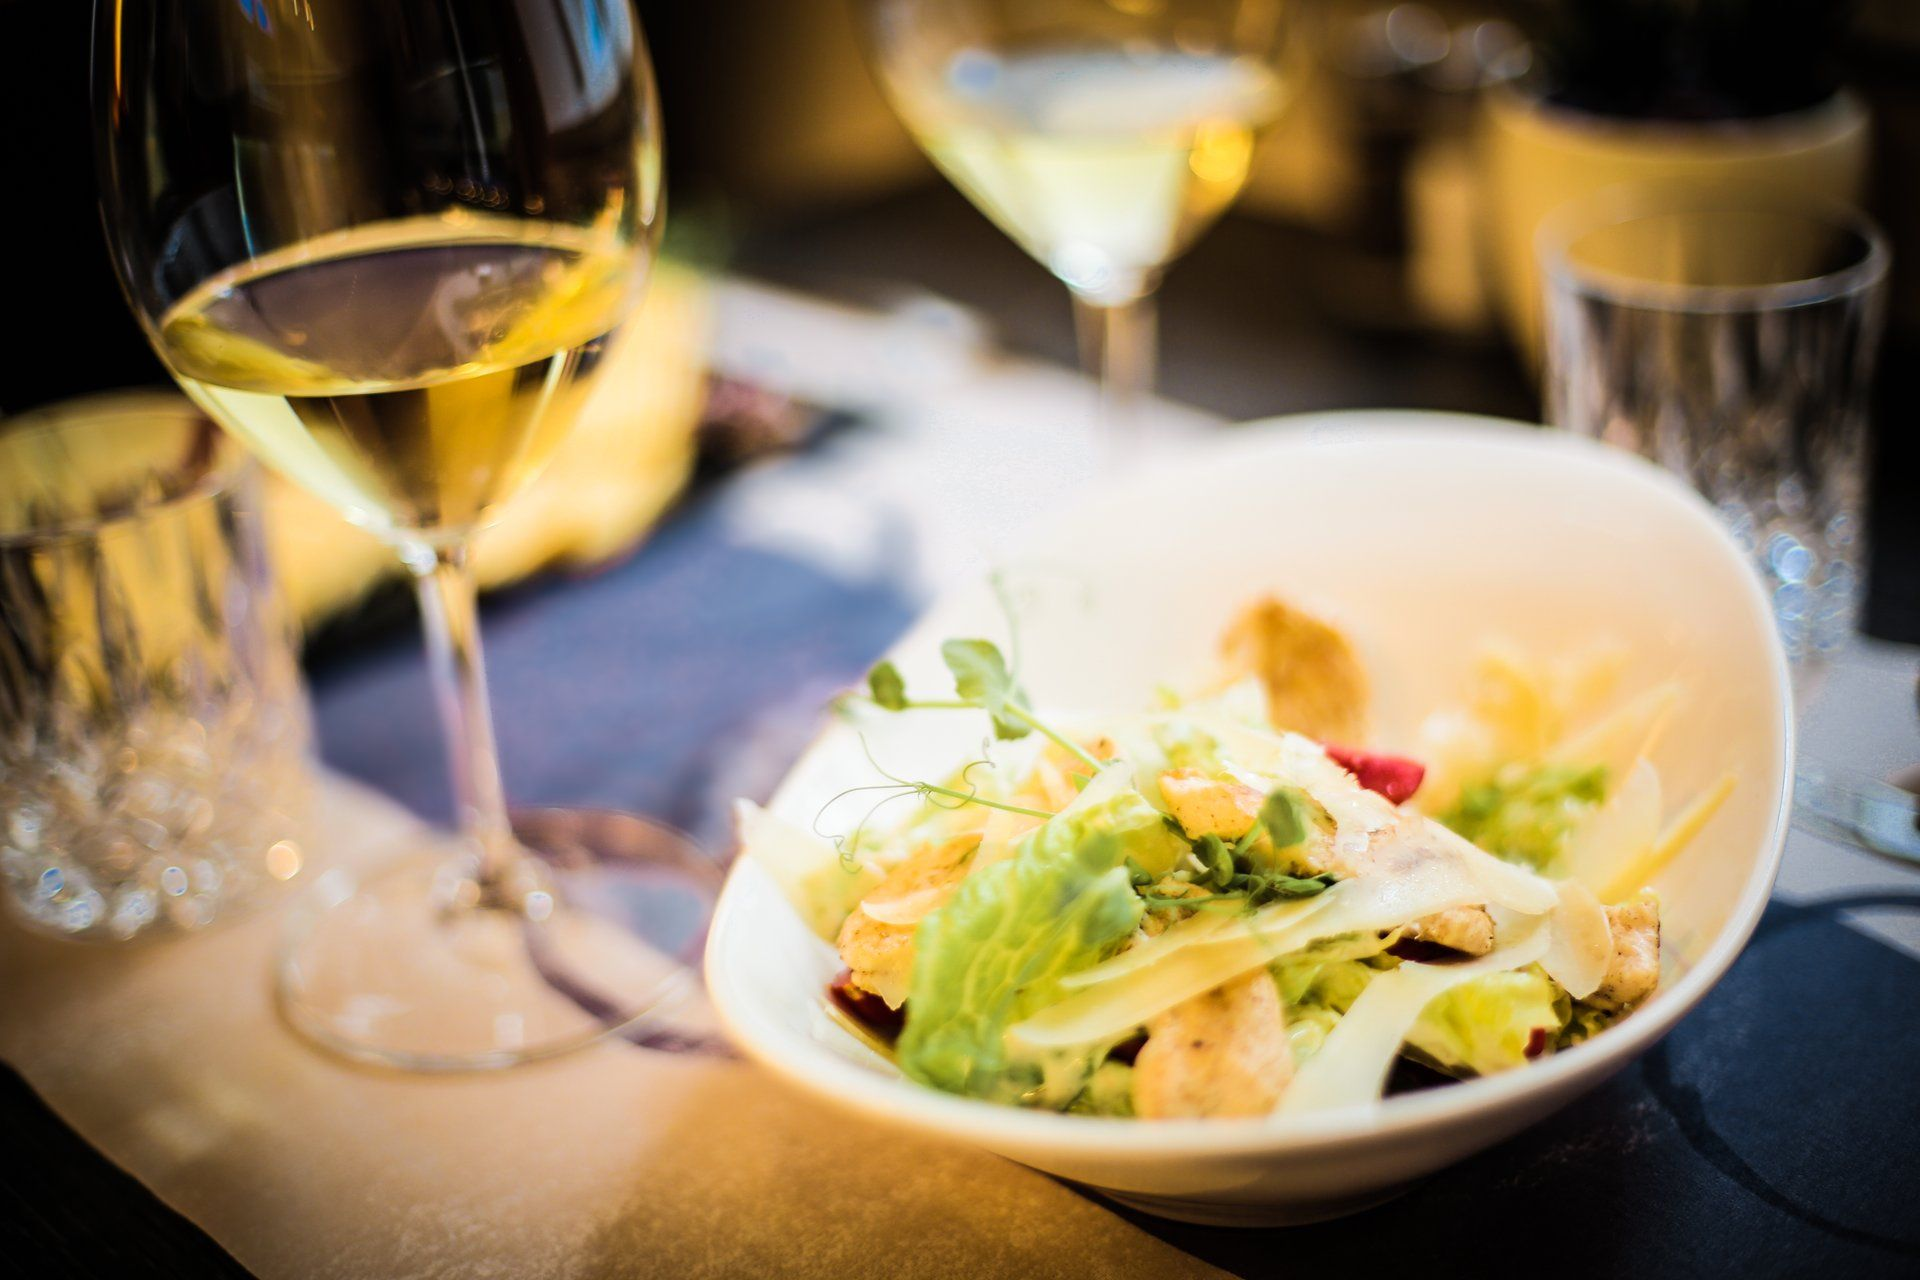 Fancy salad with white wine